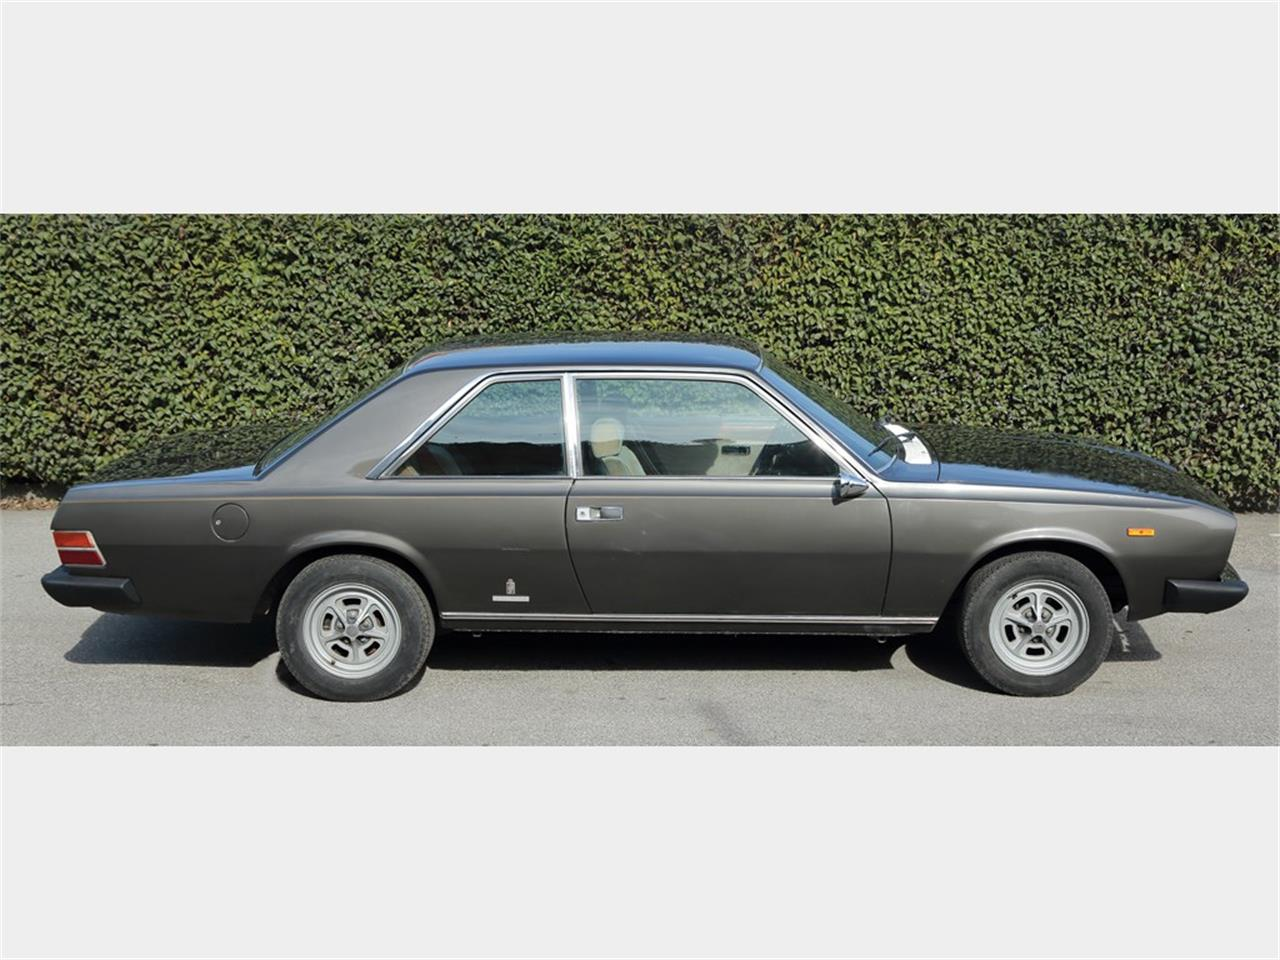 1973 Fiat 130 for sale in Essen, Other – photo 5